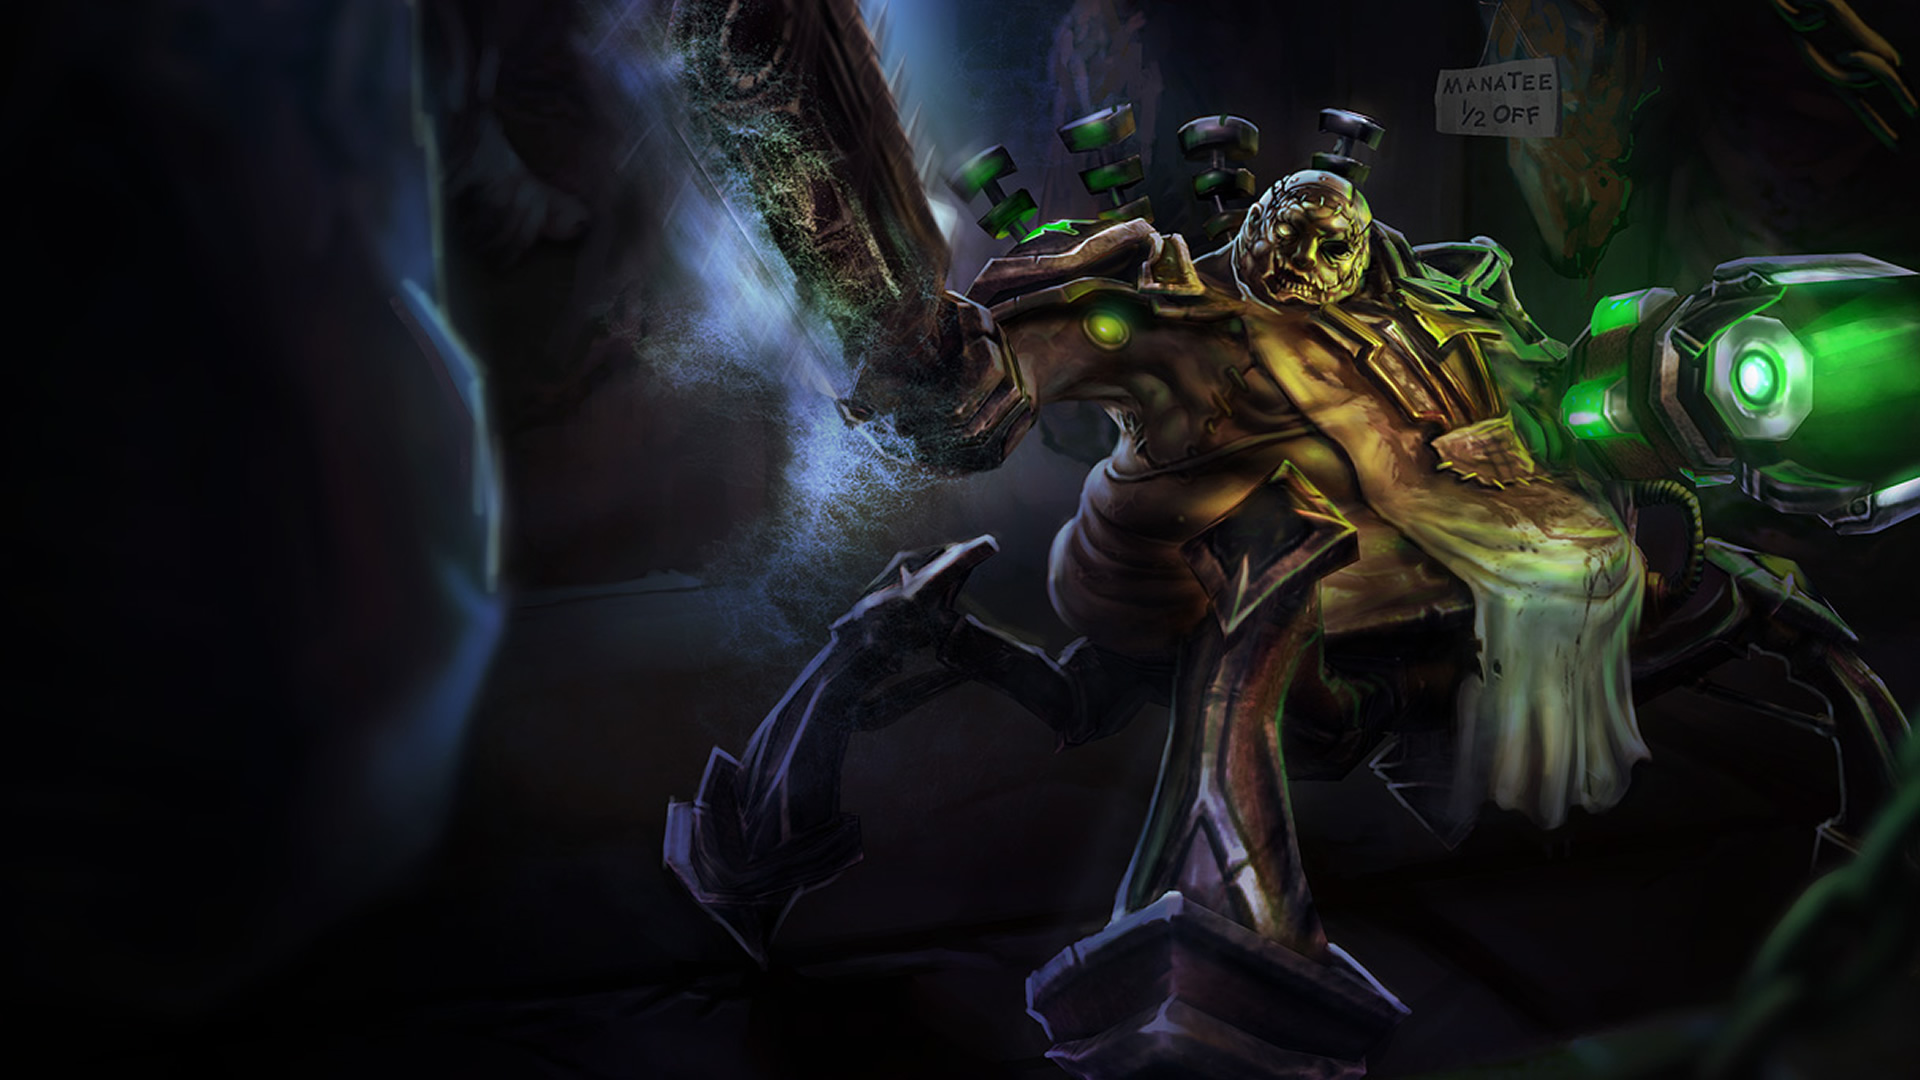 Butcher Urgot wallpaper